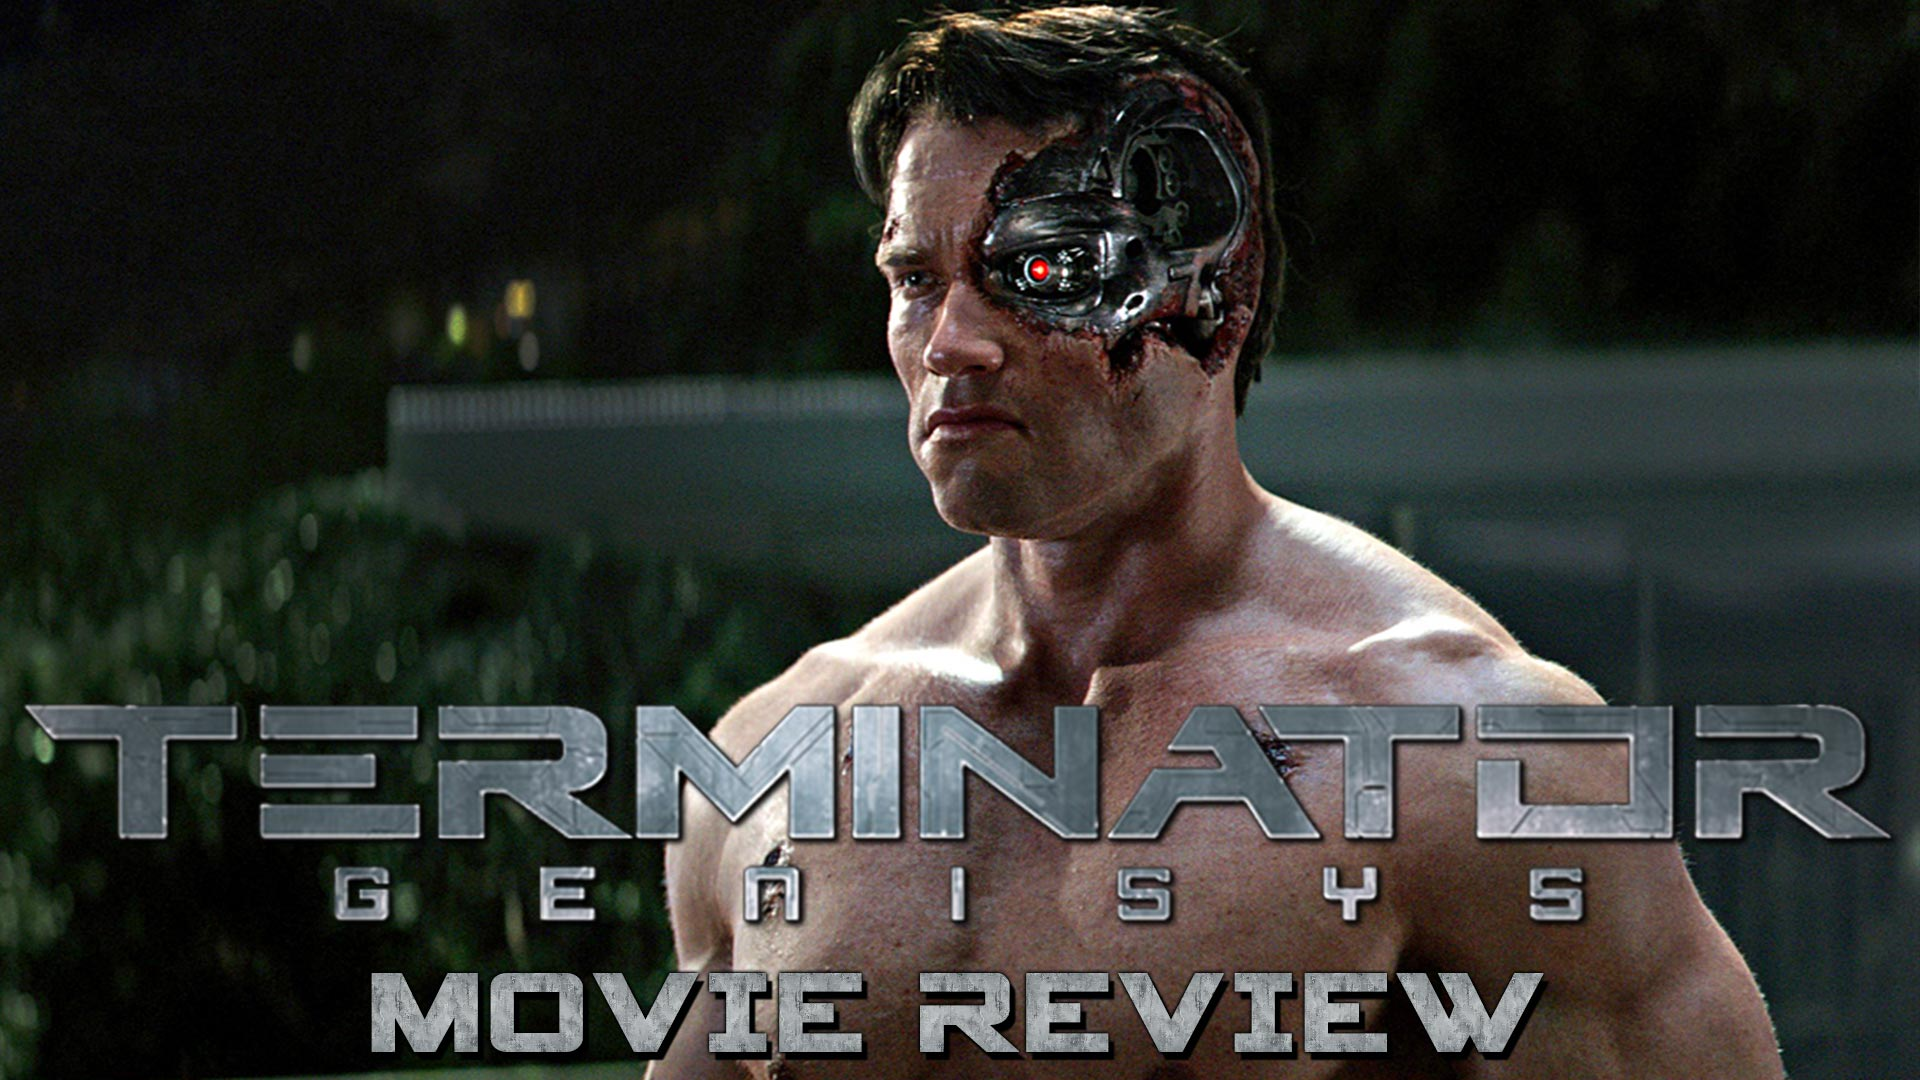 movie review Terminator Genisys podcast